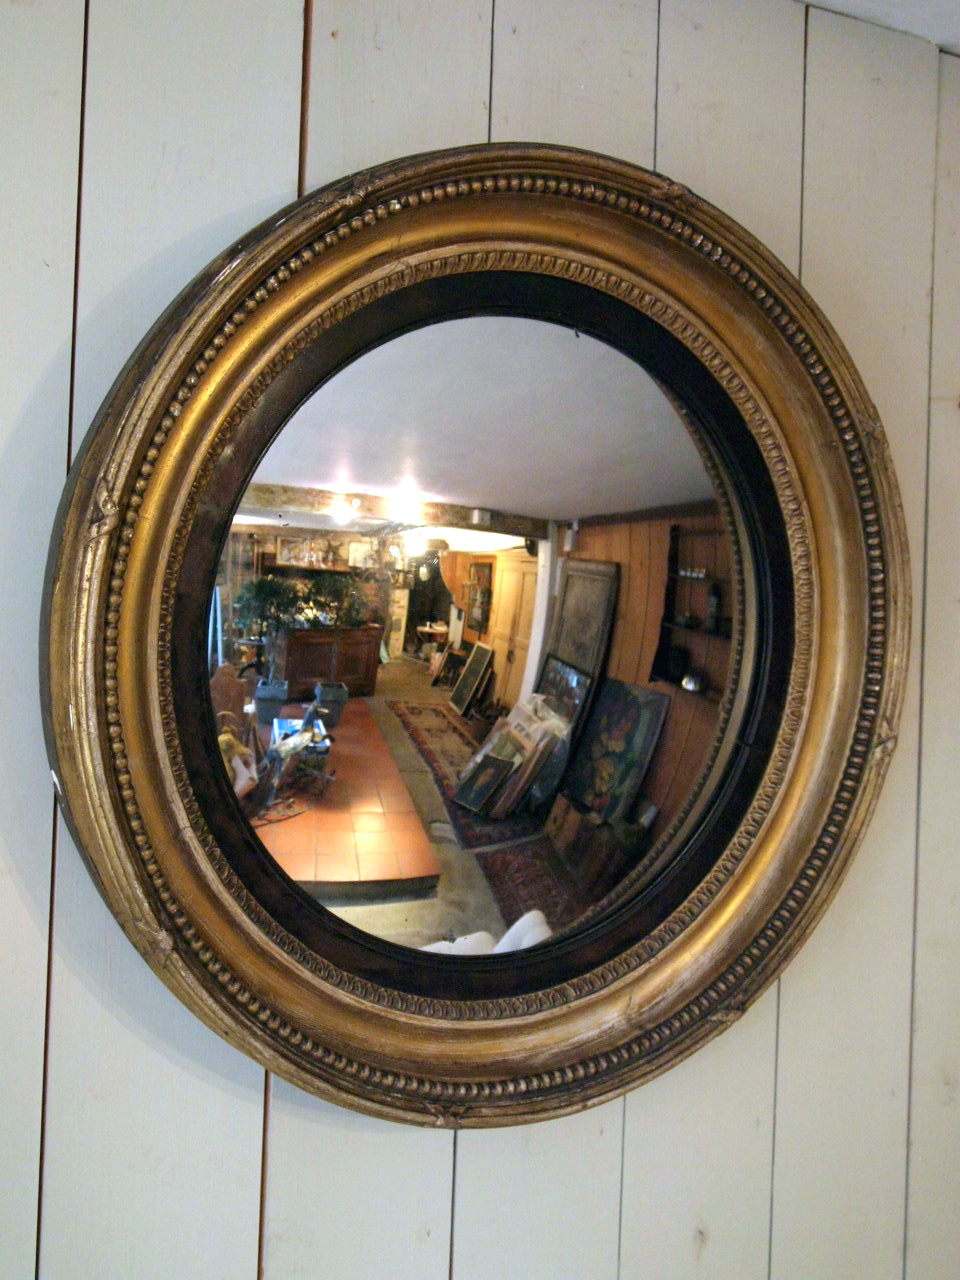 Best And Newest Antique Round Convex Mirror Puckhaber Decorative Antiques Pertaining To Round Convex Wall Mirrors (View 3 of 20)